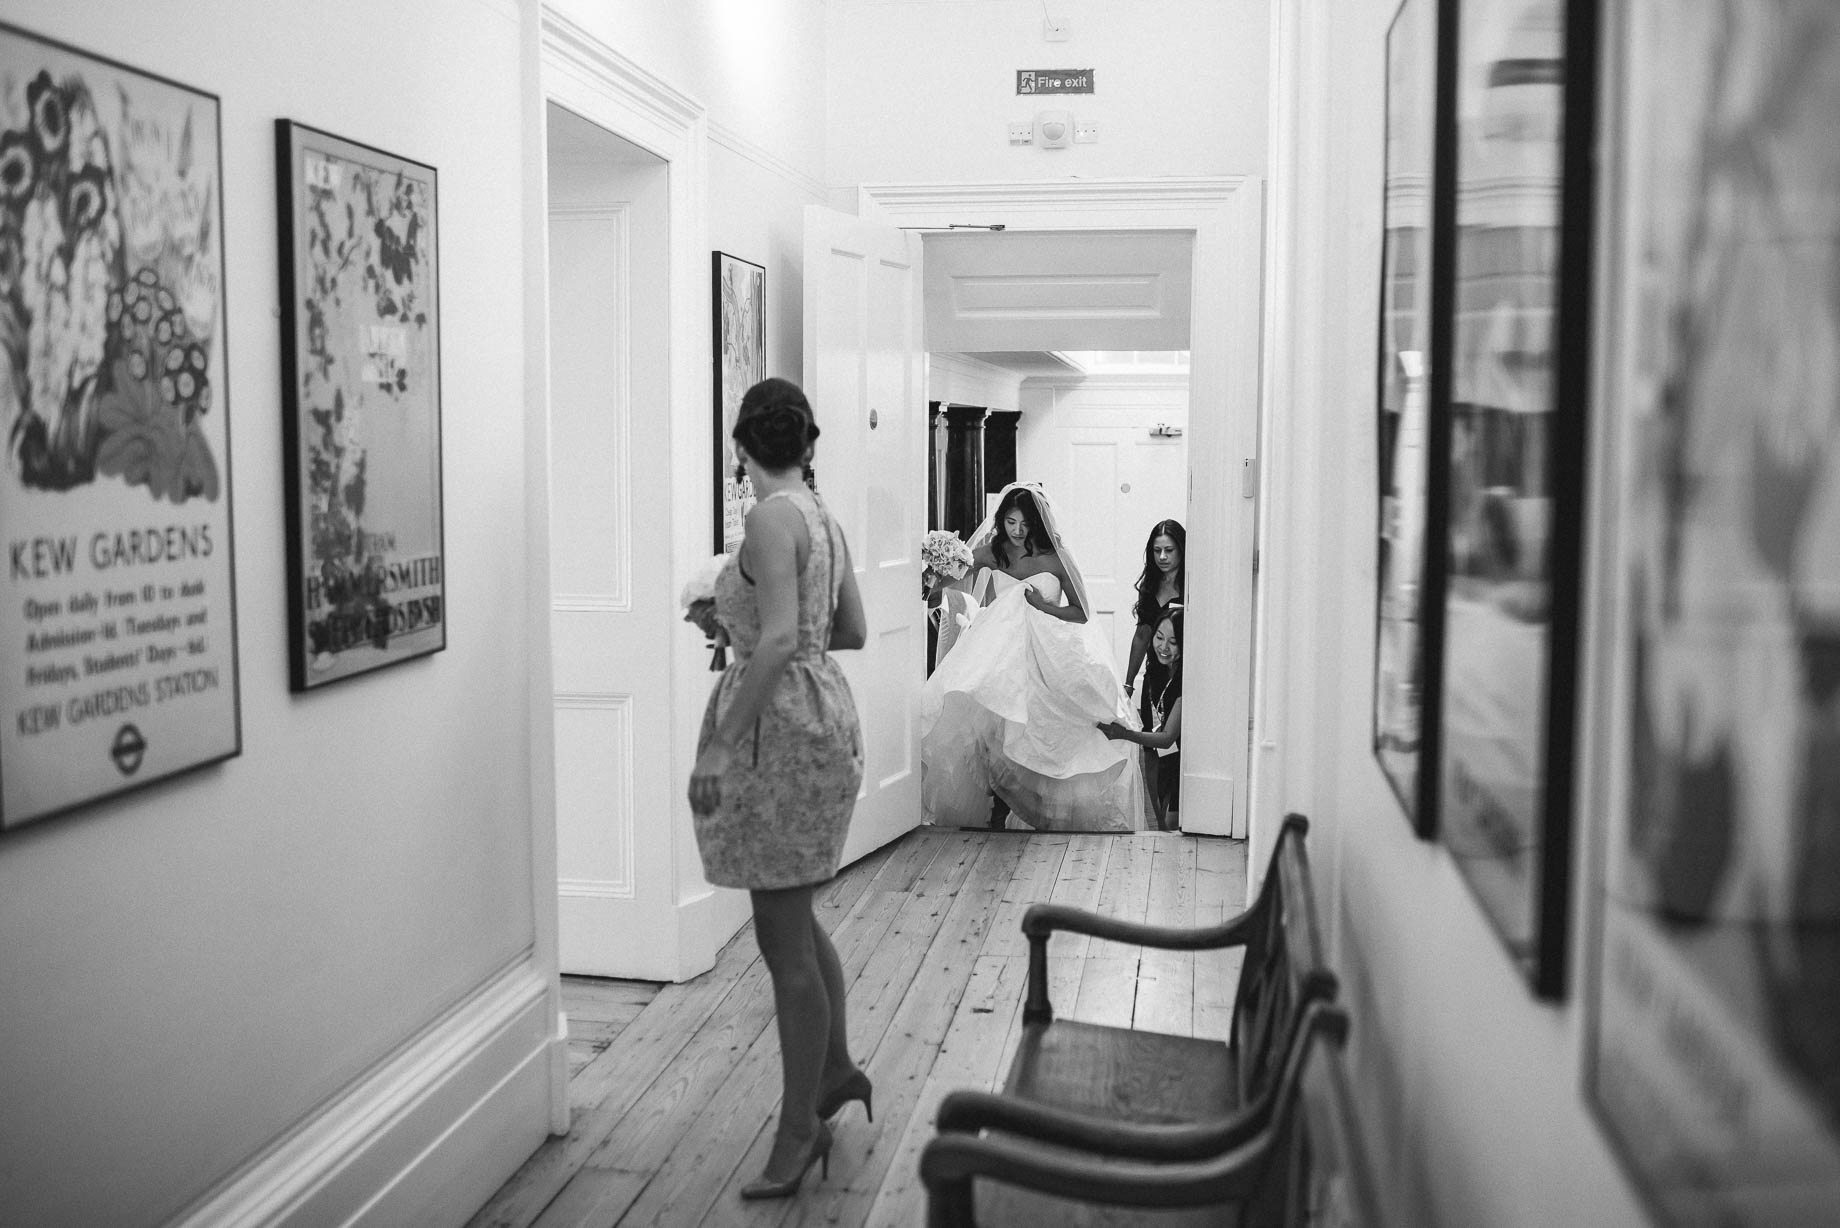 Kew Gardens wedding photography - Guy Collier Photography - Gloria and Frederik (36 of 173)